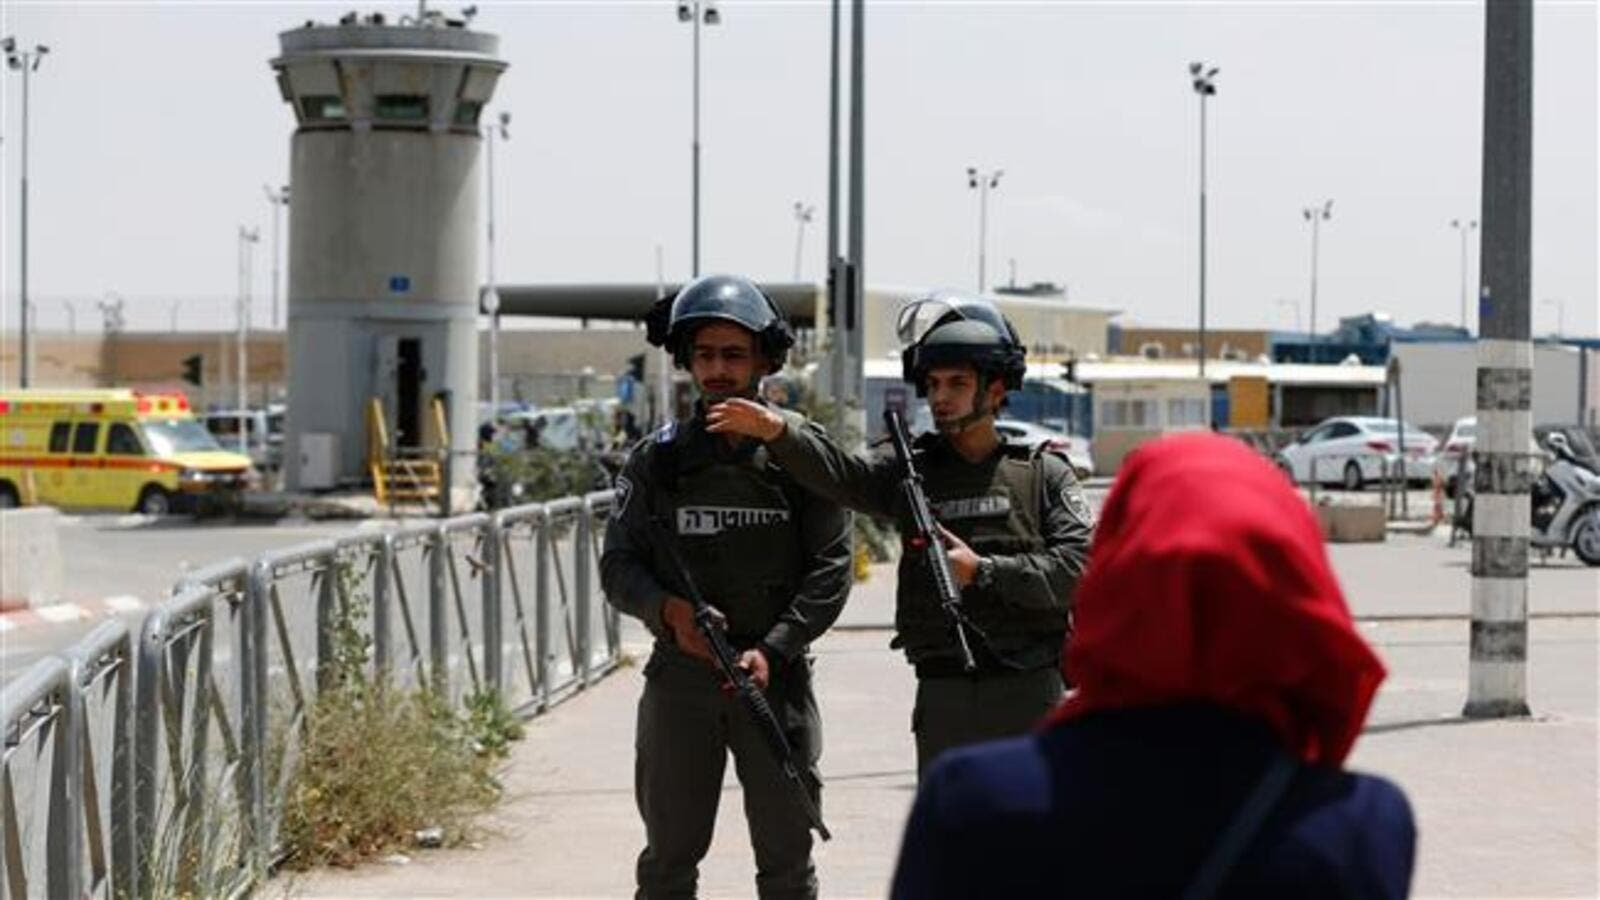 Israeli soldiers stand guard at the Qalandiya checkpoint. (AFP/File)